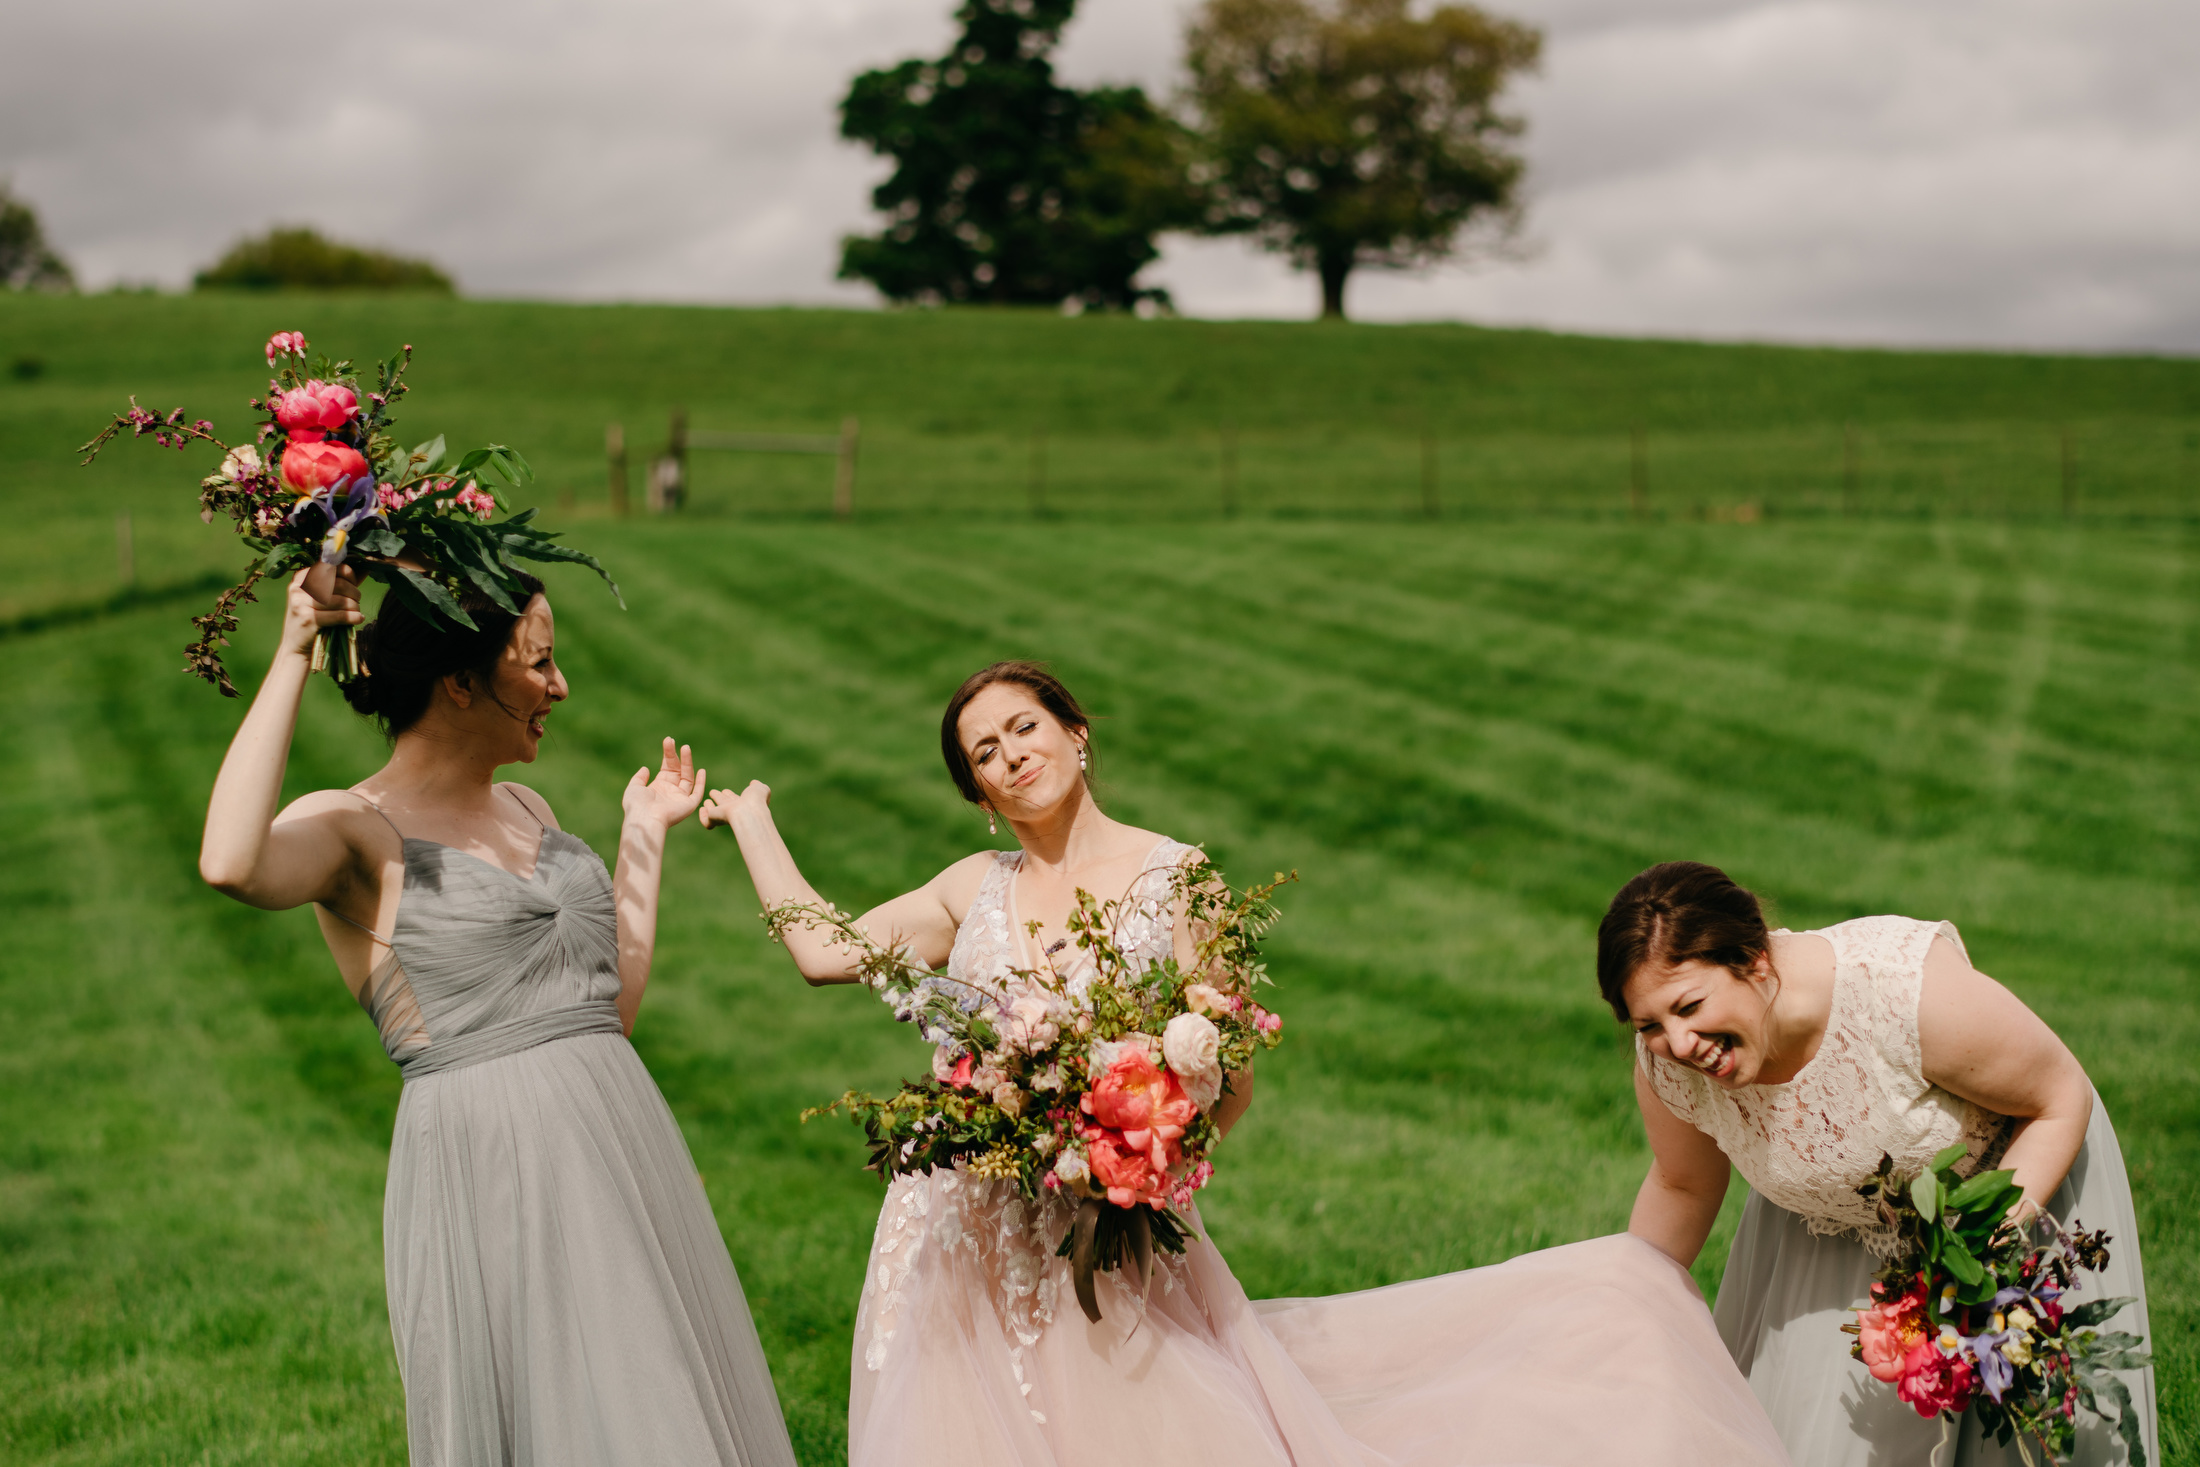 editorial style farm and outdoor wedding with bride and pink dress